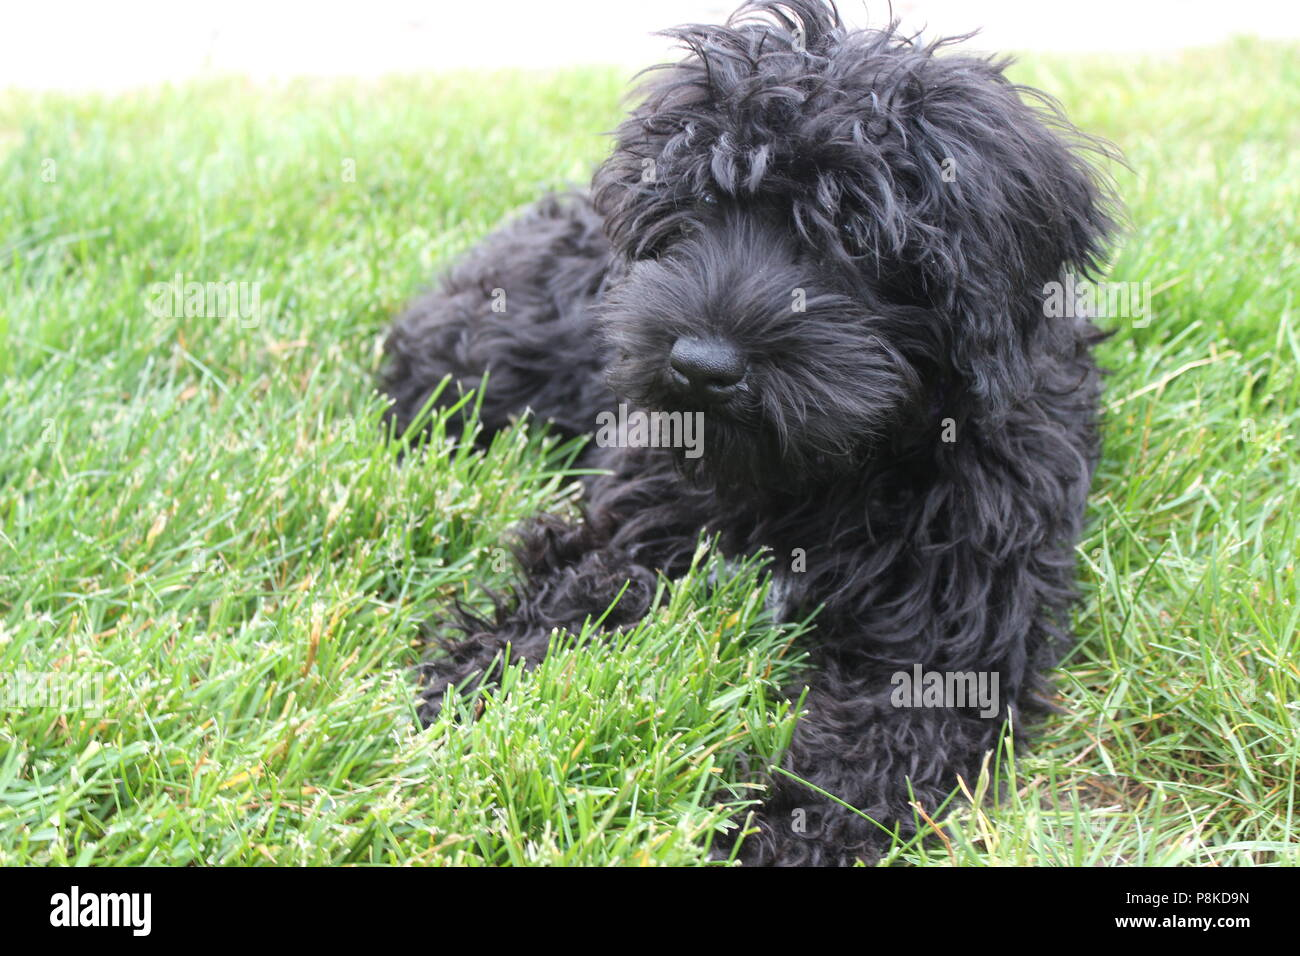 Cute dog lounging outside in the grass. Black poodle/ schnoodle puppy enjoying the wonders of the great outdoors on a warm summer day. - Stock Image